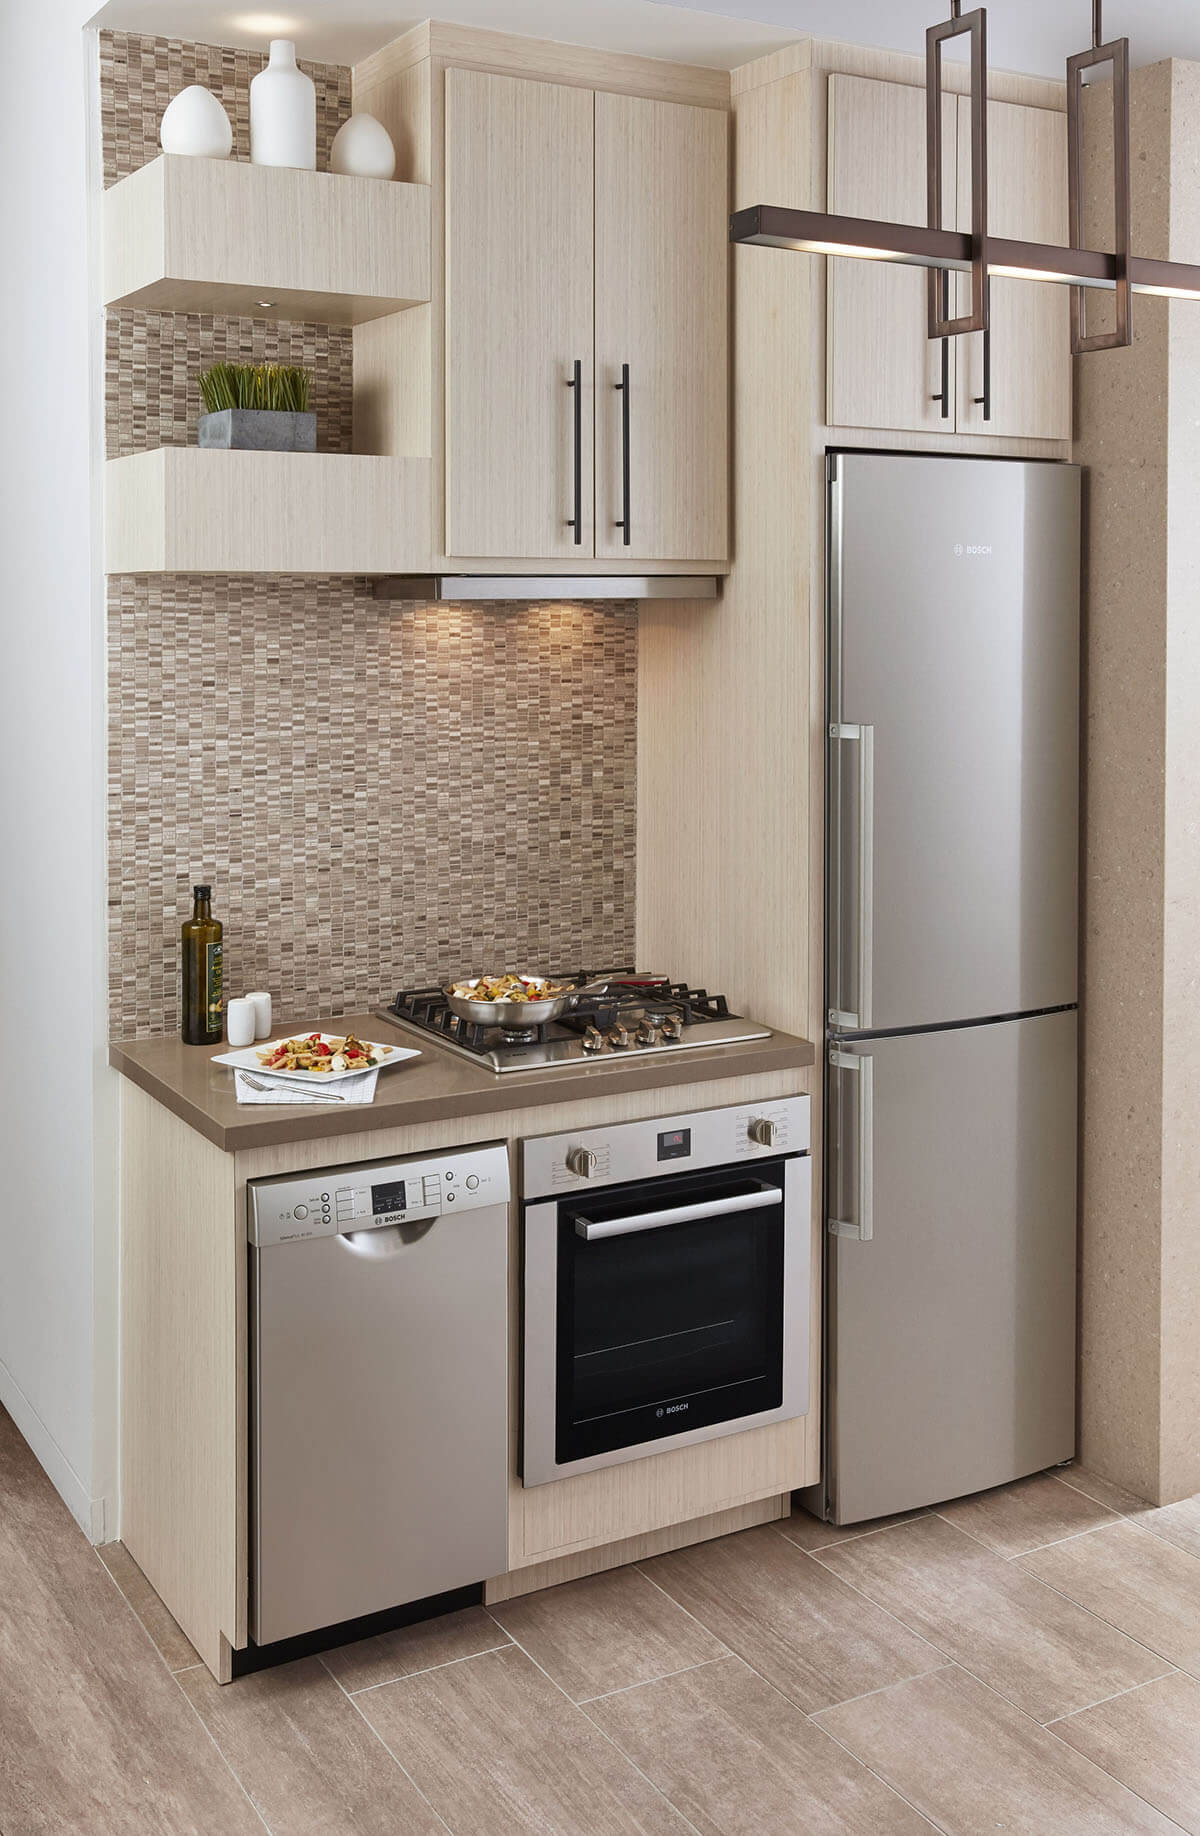 30 Best Small Kitchen Decor and Design Ideas for 2020 on Best Small Kitchens  id=46951